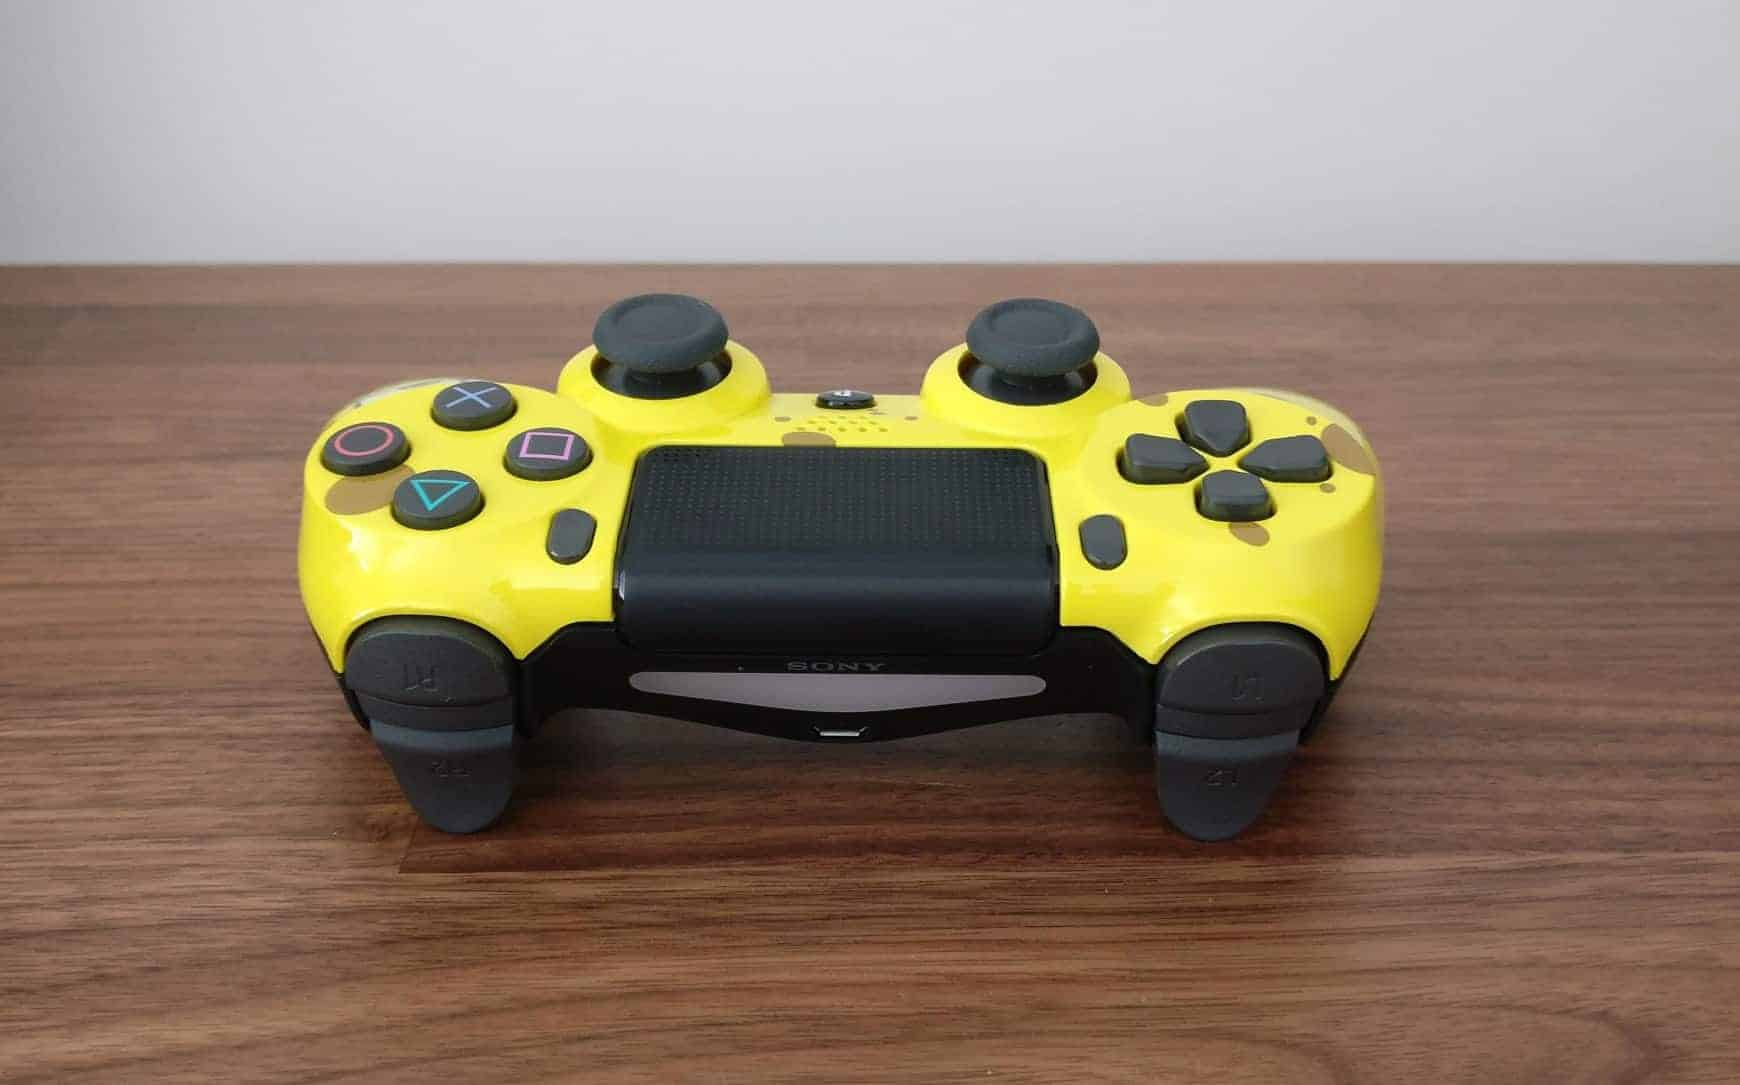 mega-modz-planey-ps4-Photos-09 Mega Modz Planet Modded PS4 and Xbox One Controller Review